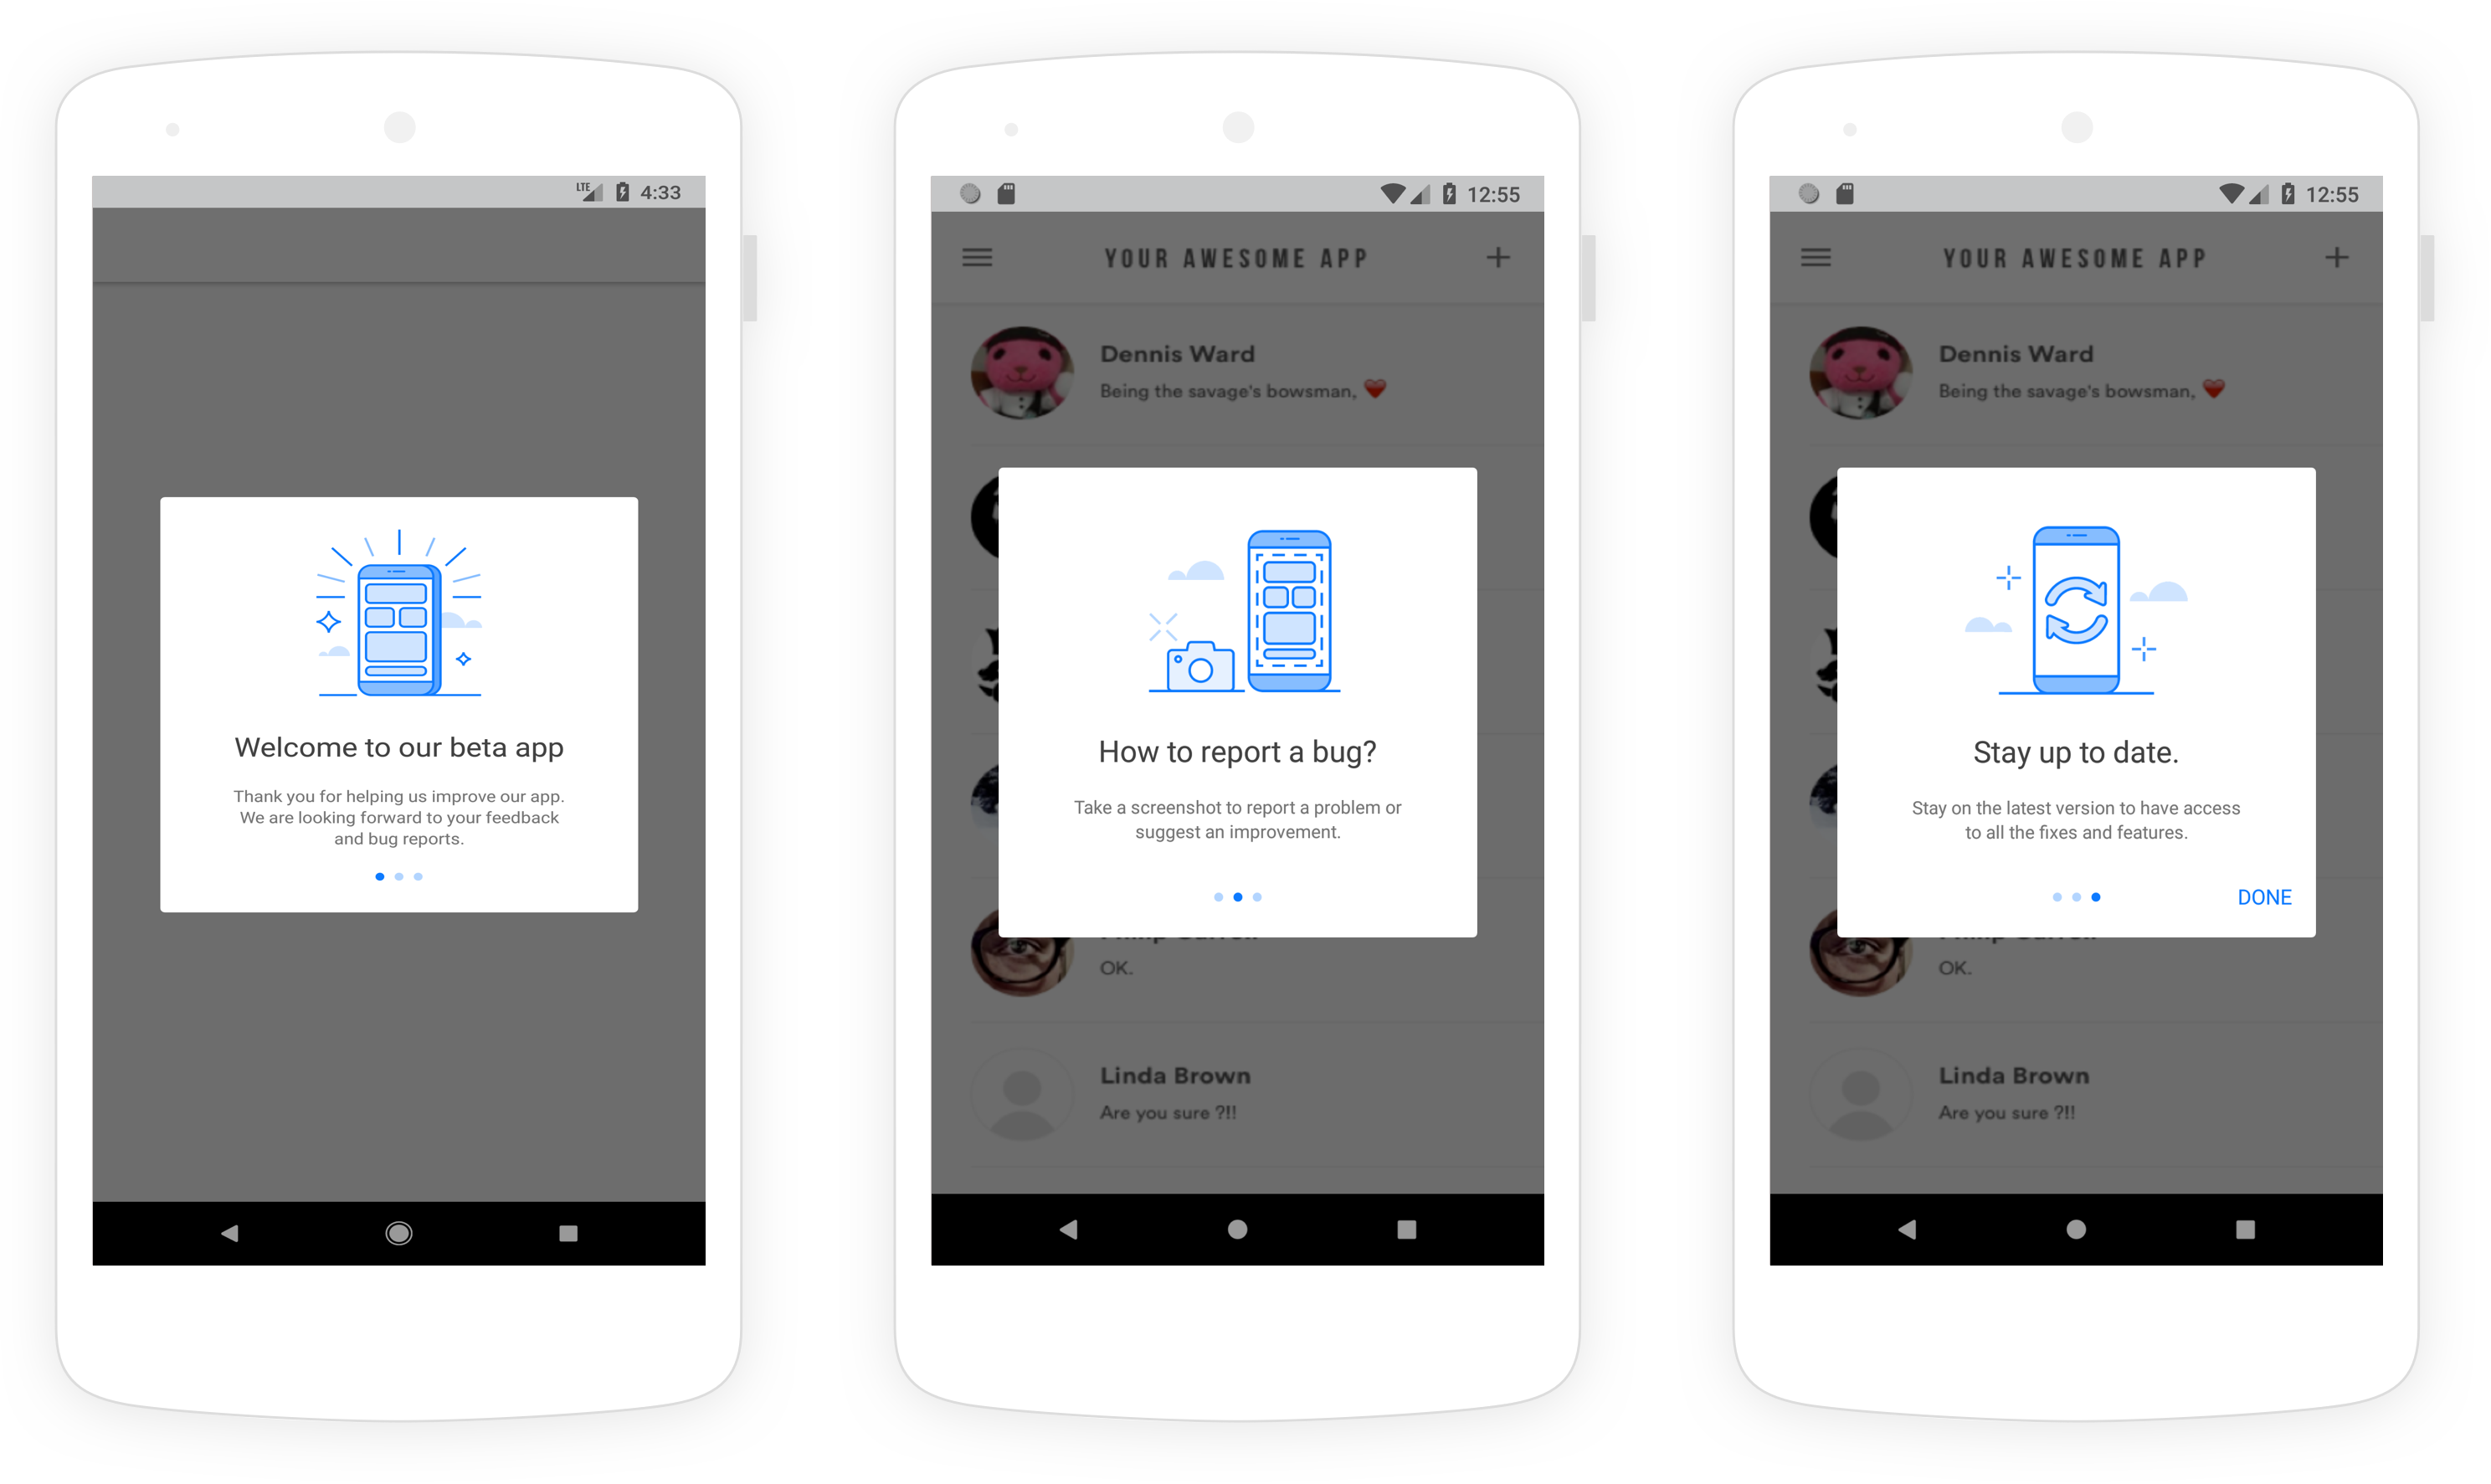 An example of the three-step on-boarding flow that appears to users in beta apps.